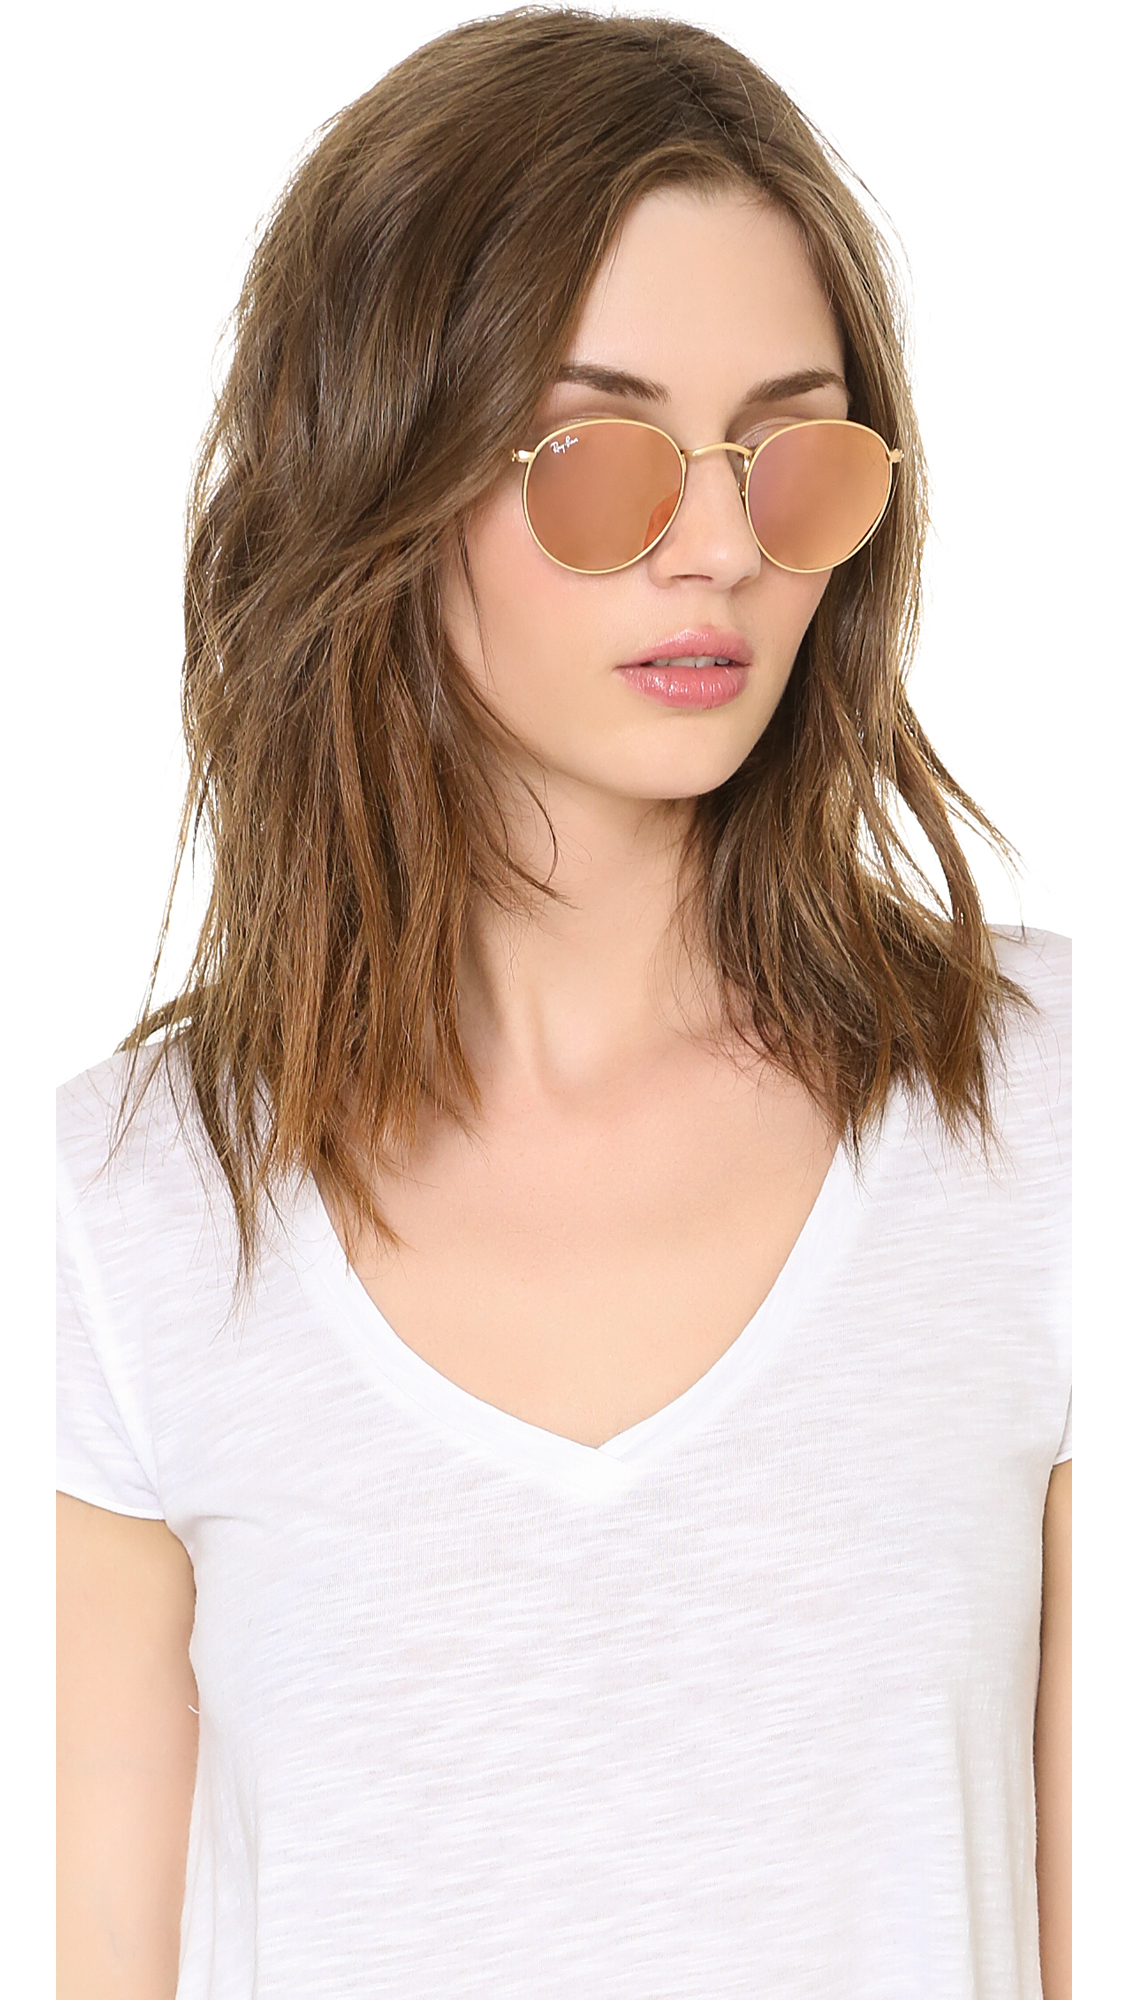 Ray Ban Icons Mirrored Sunglasses In Pink Matte Gold